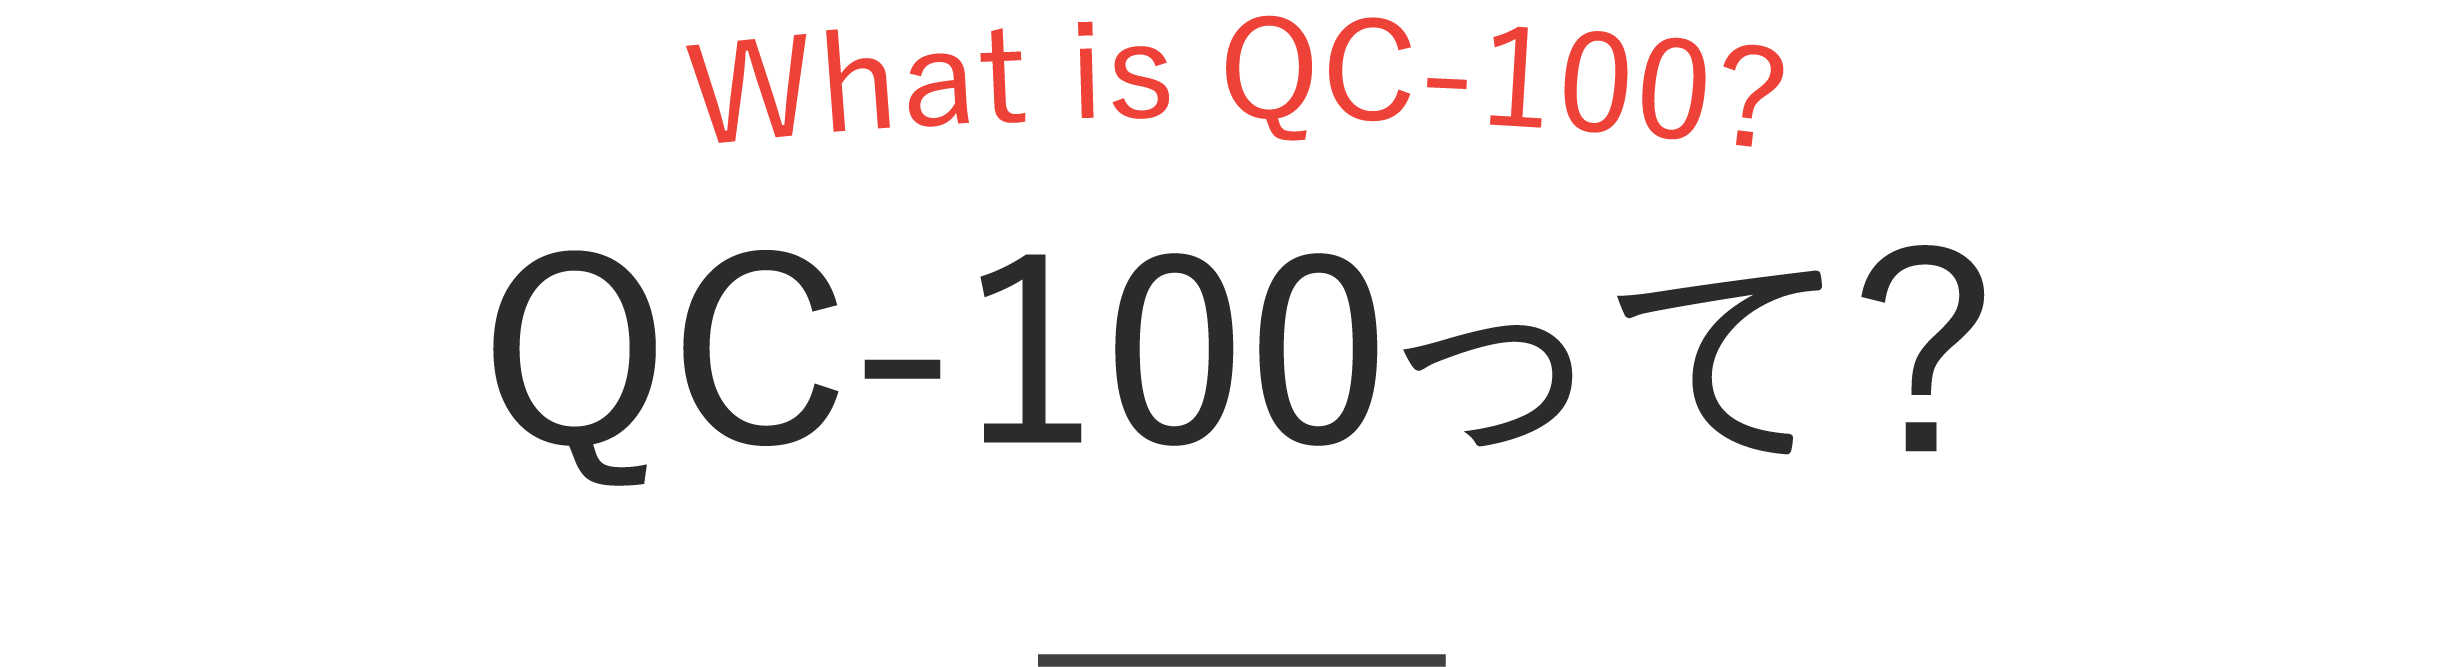 What is QC100?